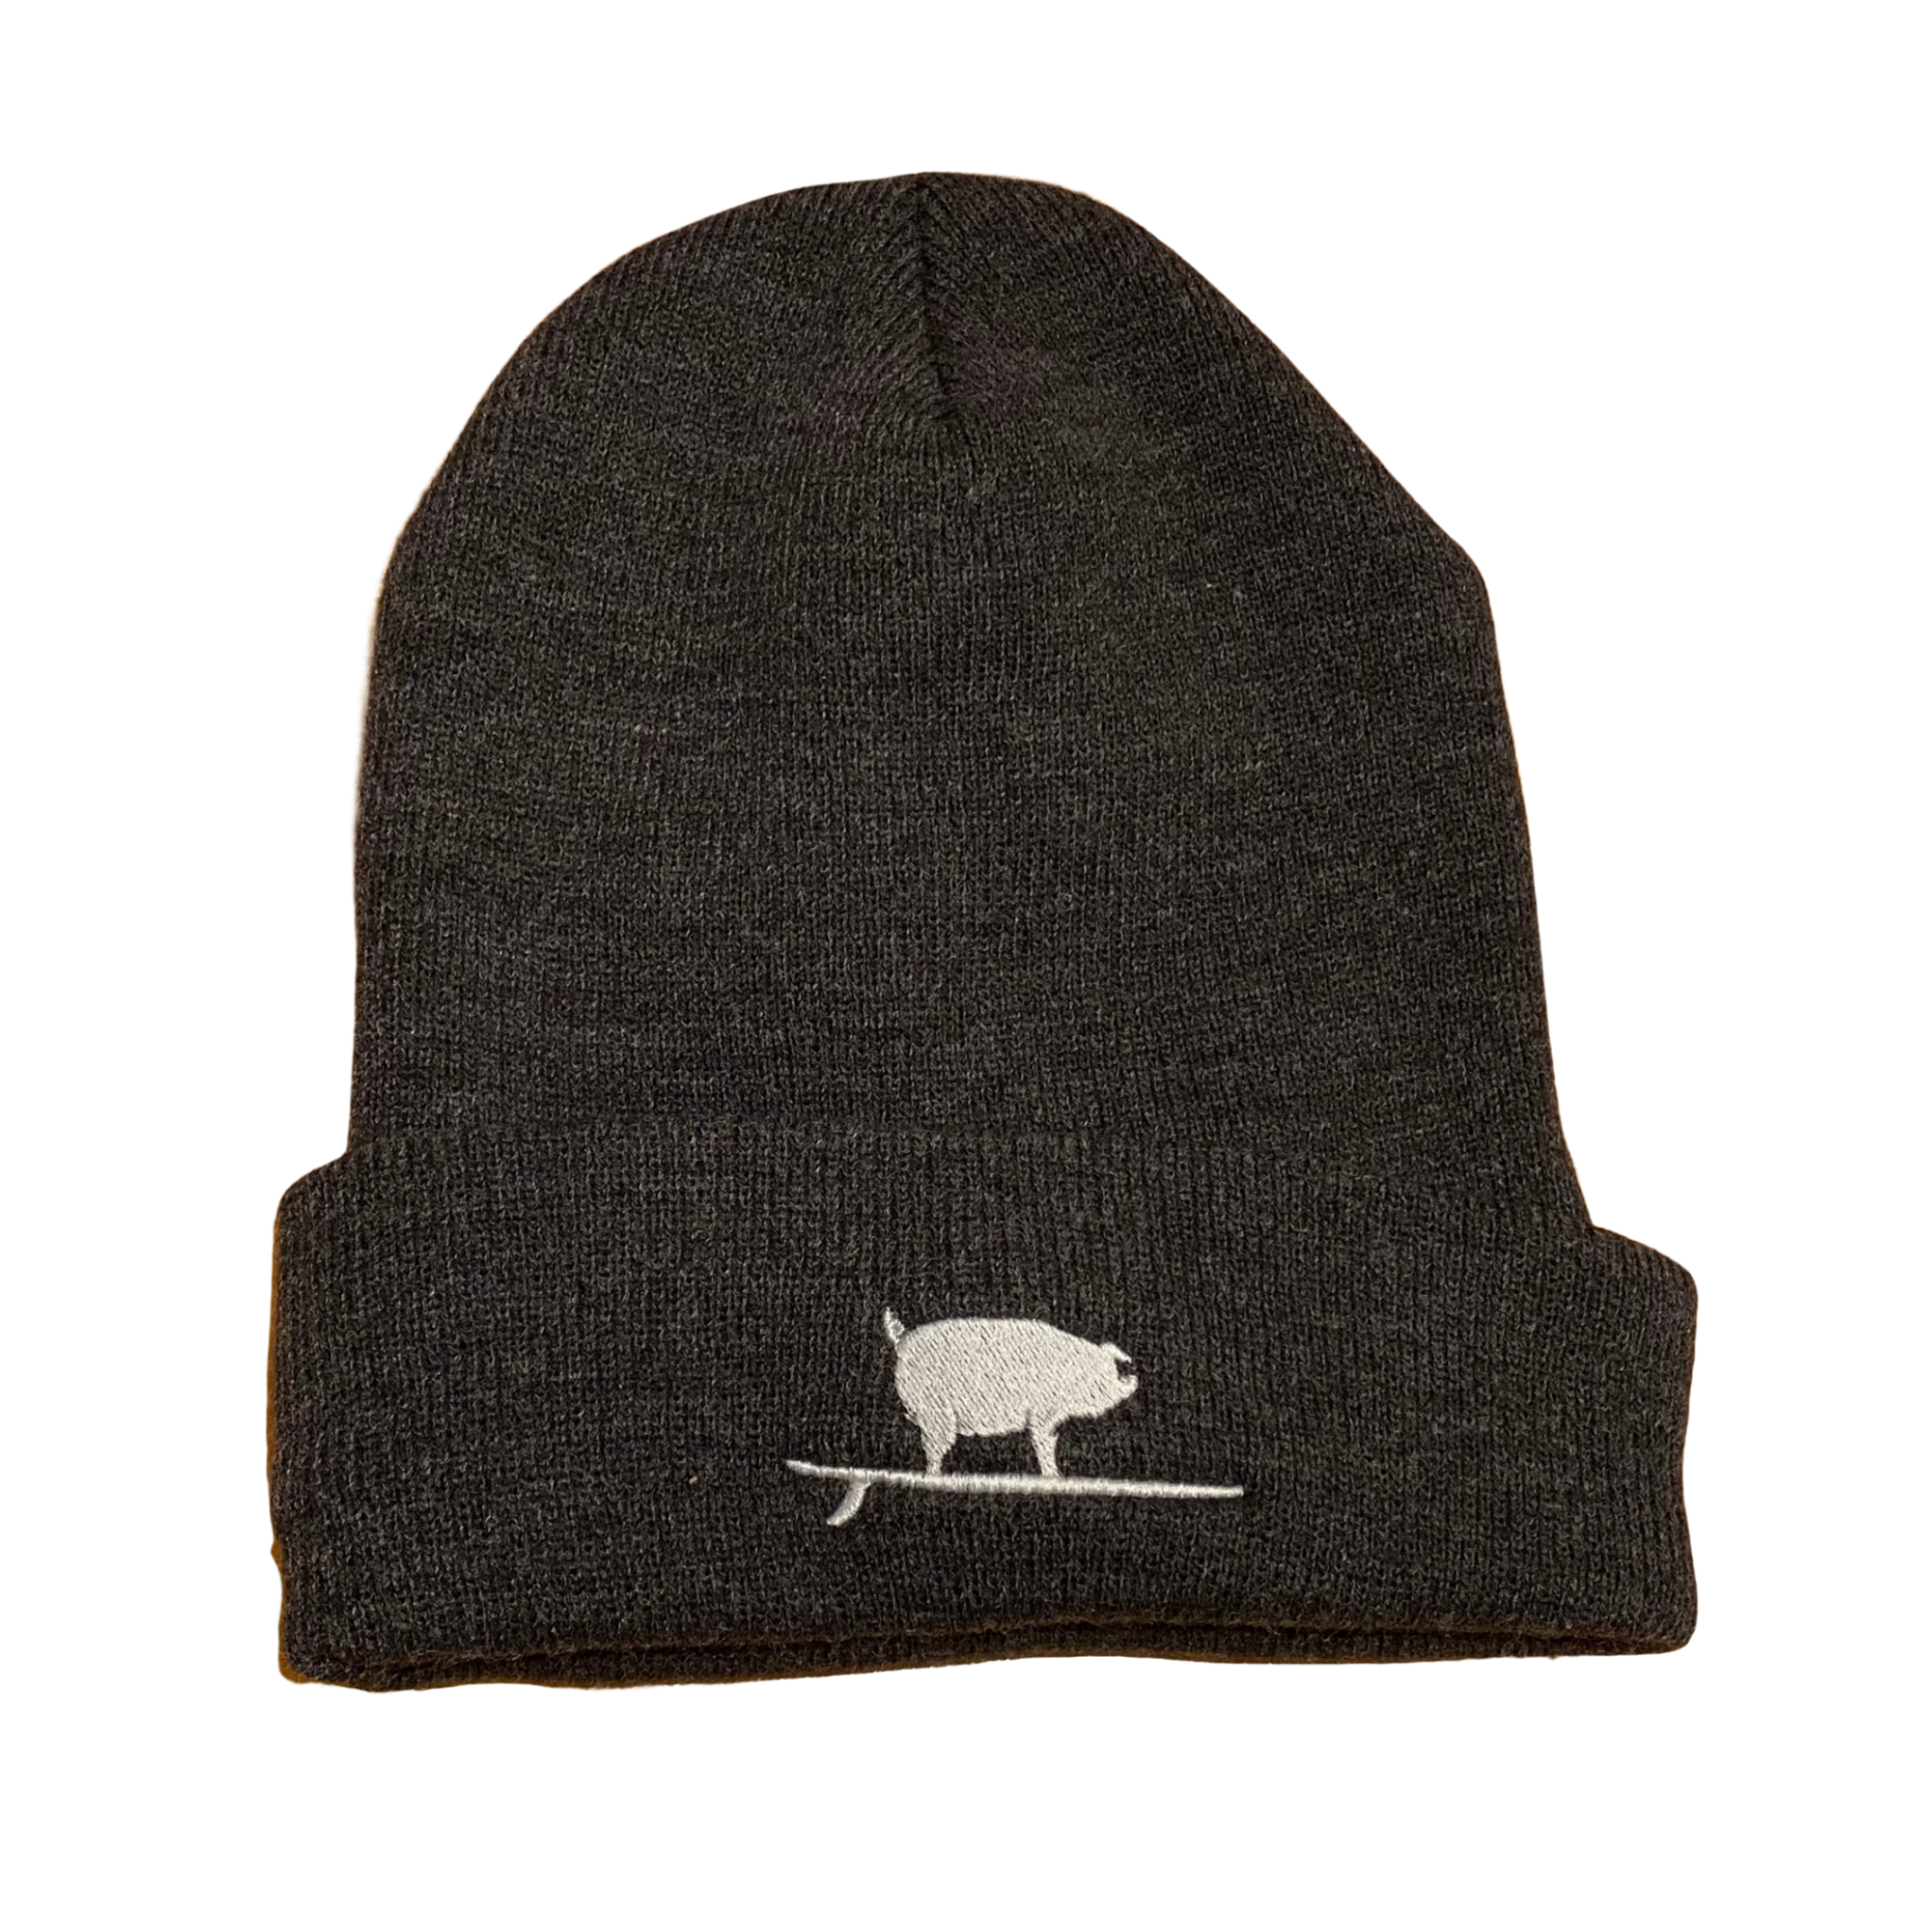 S.L. Revival Co. Surfing Pig Beanie, Charcoal